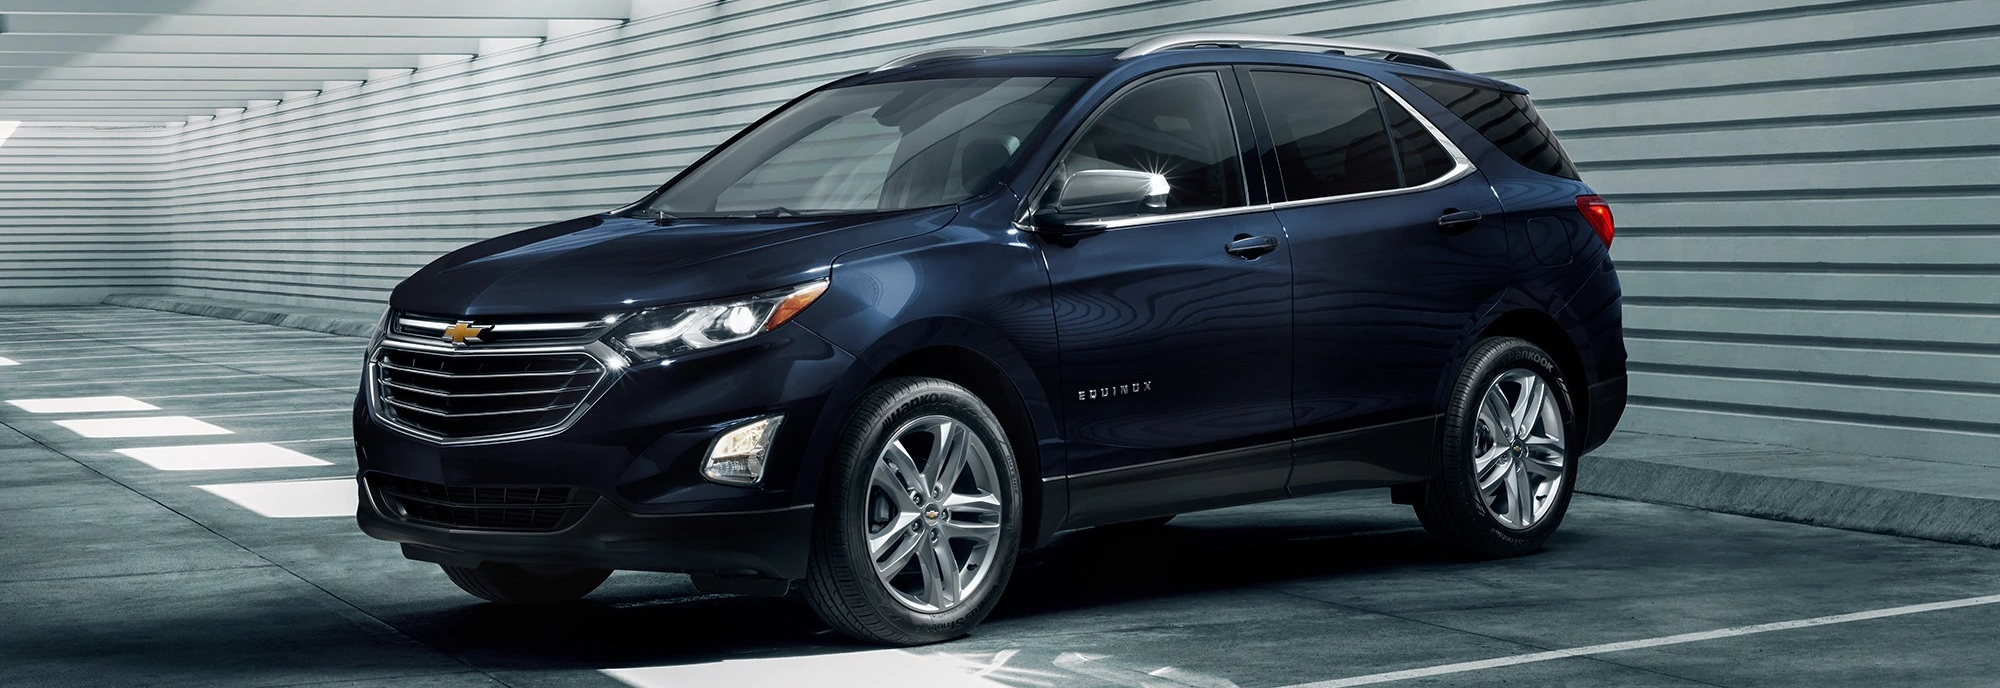 2020 Chevrolet Equinox for Sale near Owasso, OK